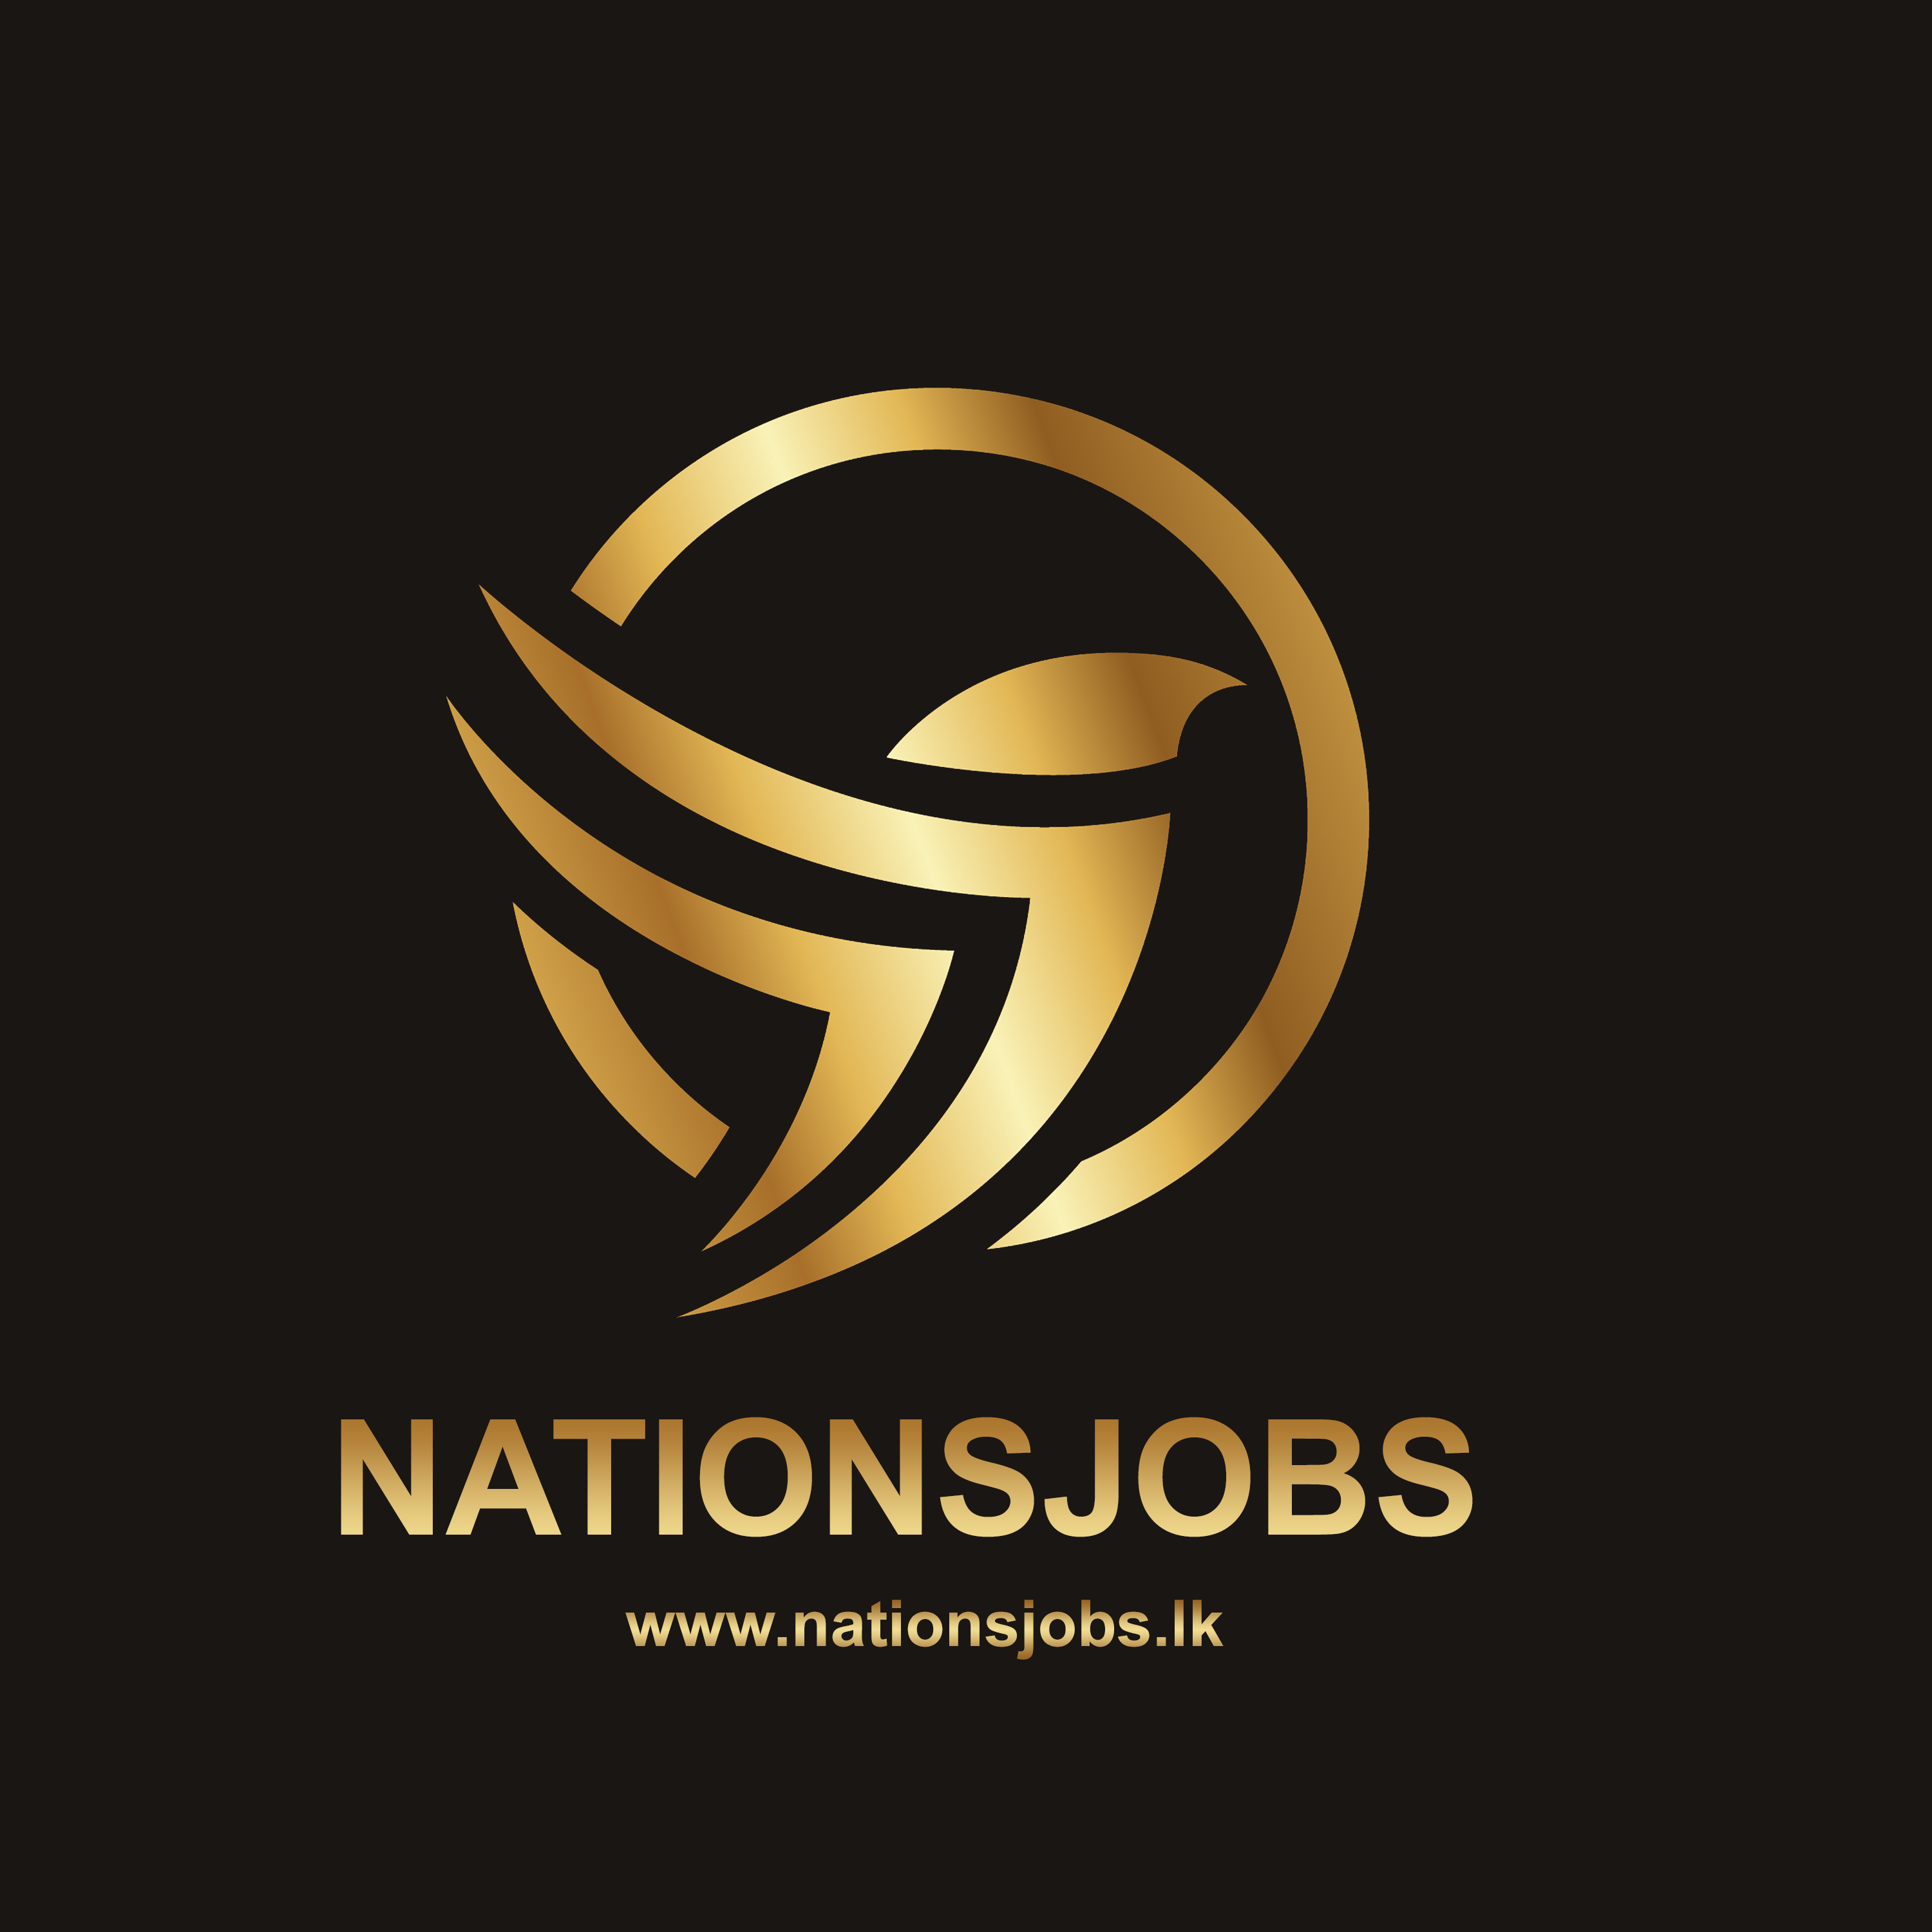 Red And Black We Are Hiring Png Background Design We Are Hiring Png Images We Are Hiring Vector Were Hiring Png Png And Vector With Transparent Background Fo We Are Hiring